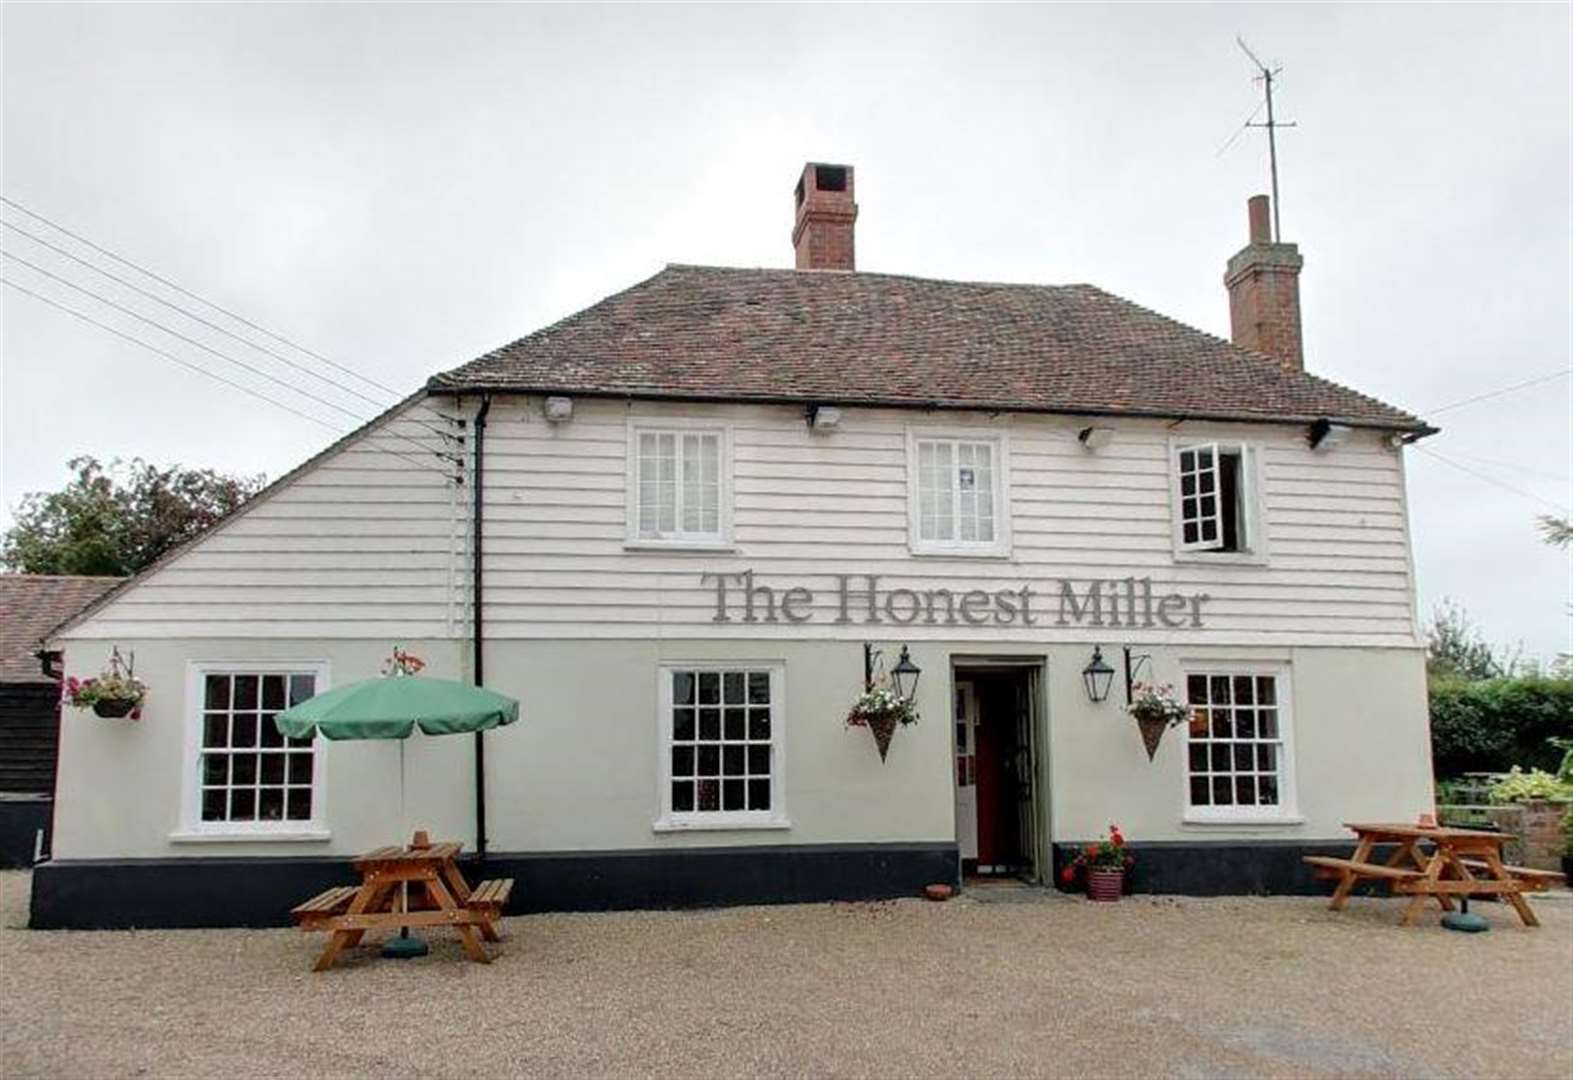 Village pub to reopen